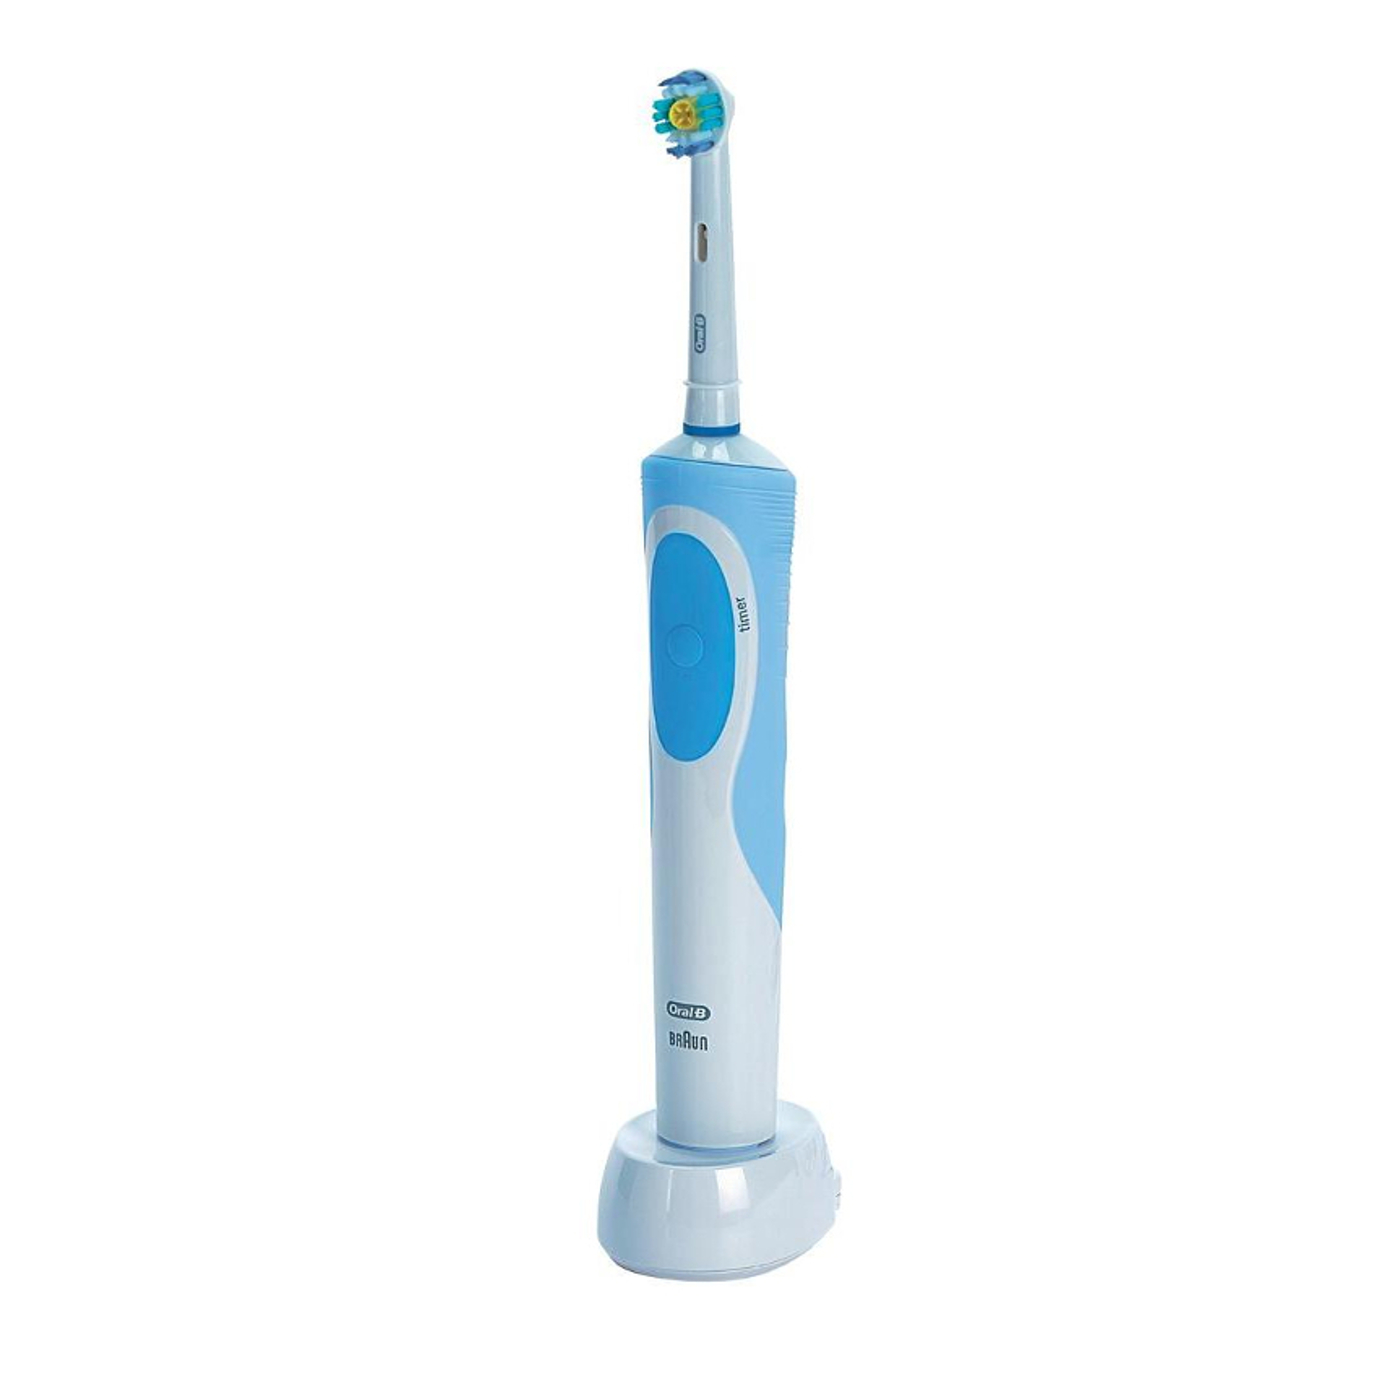 Details about Braun Oral-B Vitality 3D White Rechargeable Electric  Toothbrush 2 Minute Timer